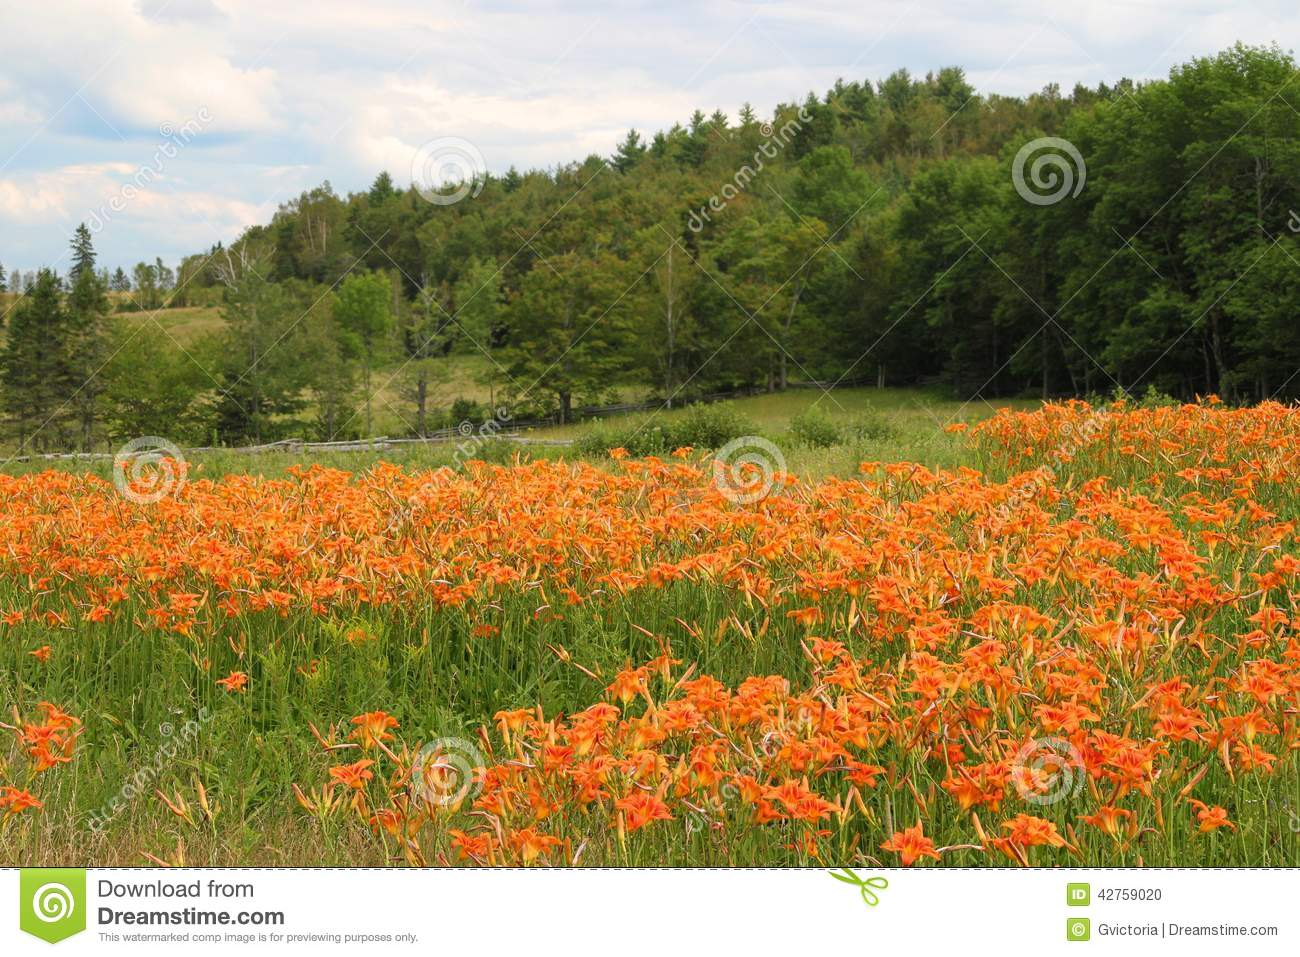 Tiger lilies in the rural field stock photo image of brunswick royalty free stock photo izmirmasajfo Images